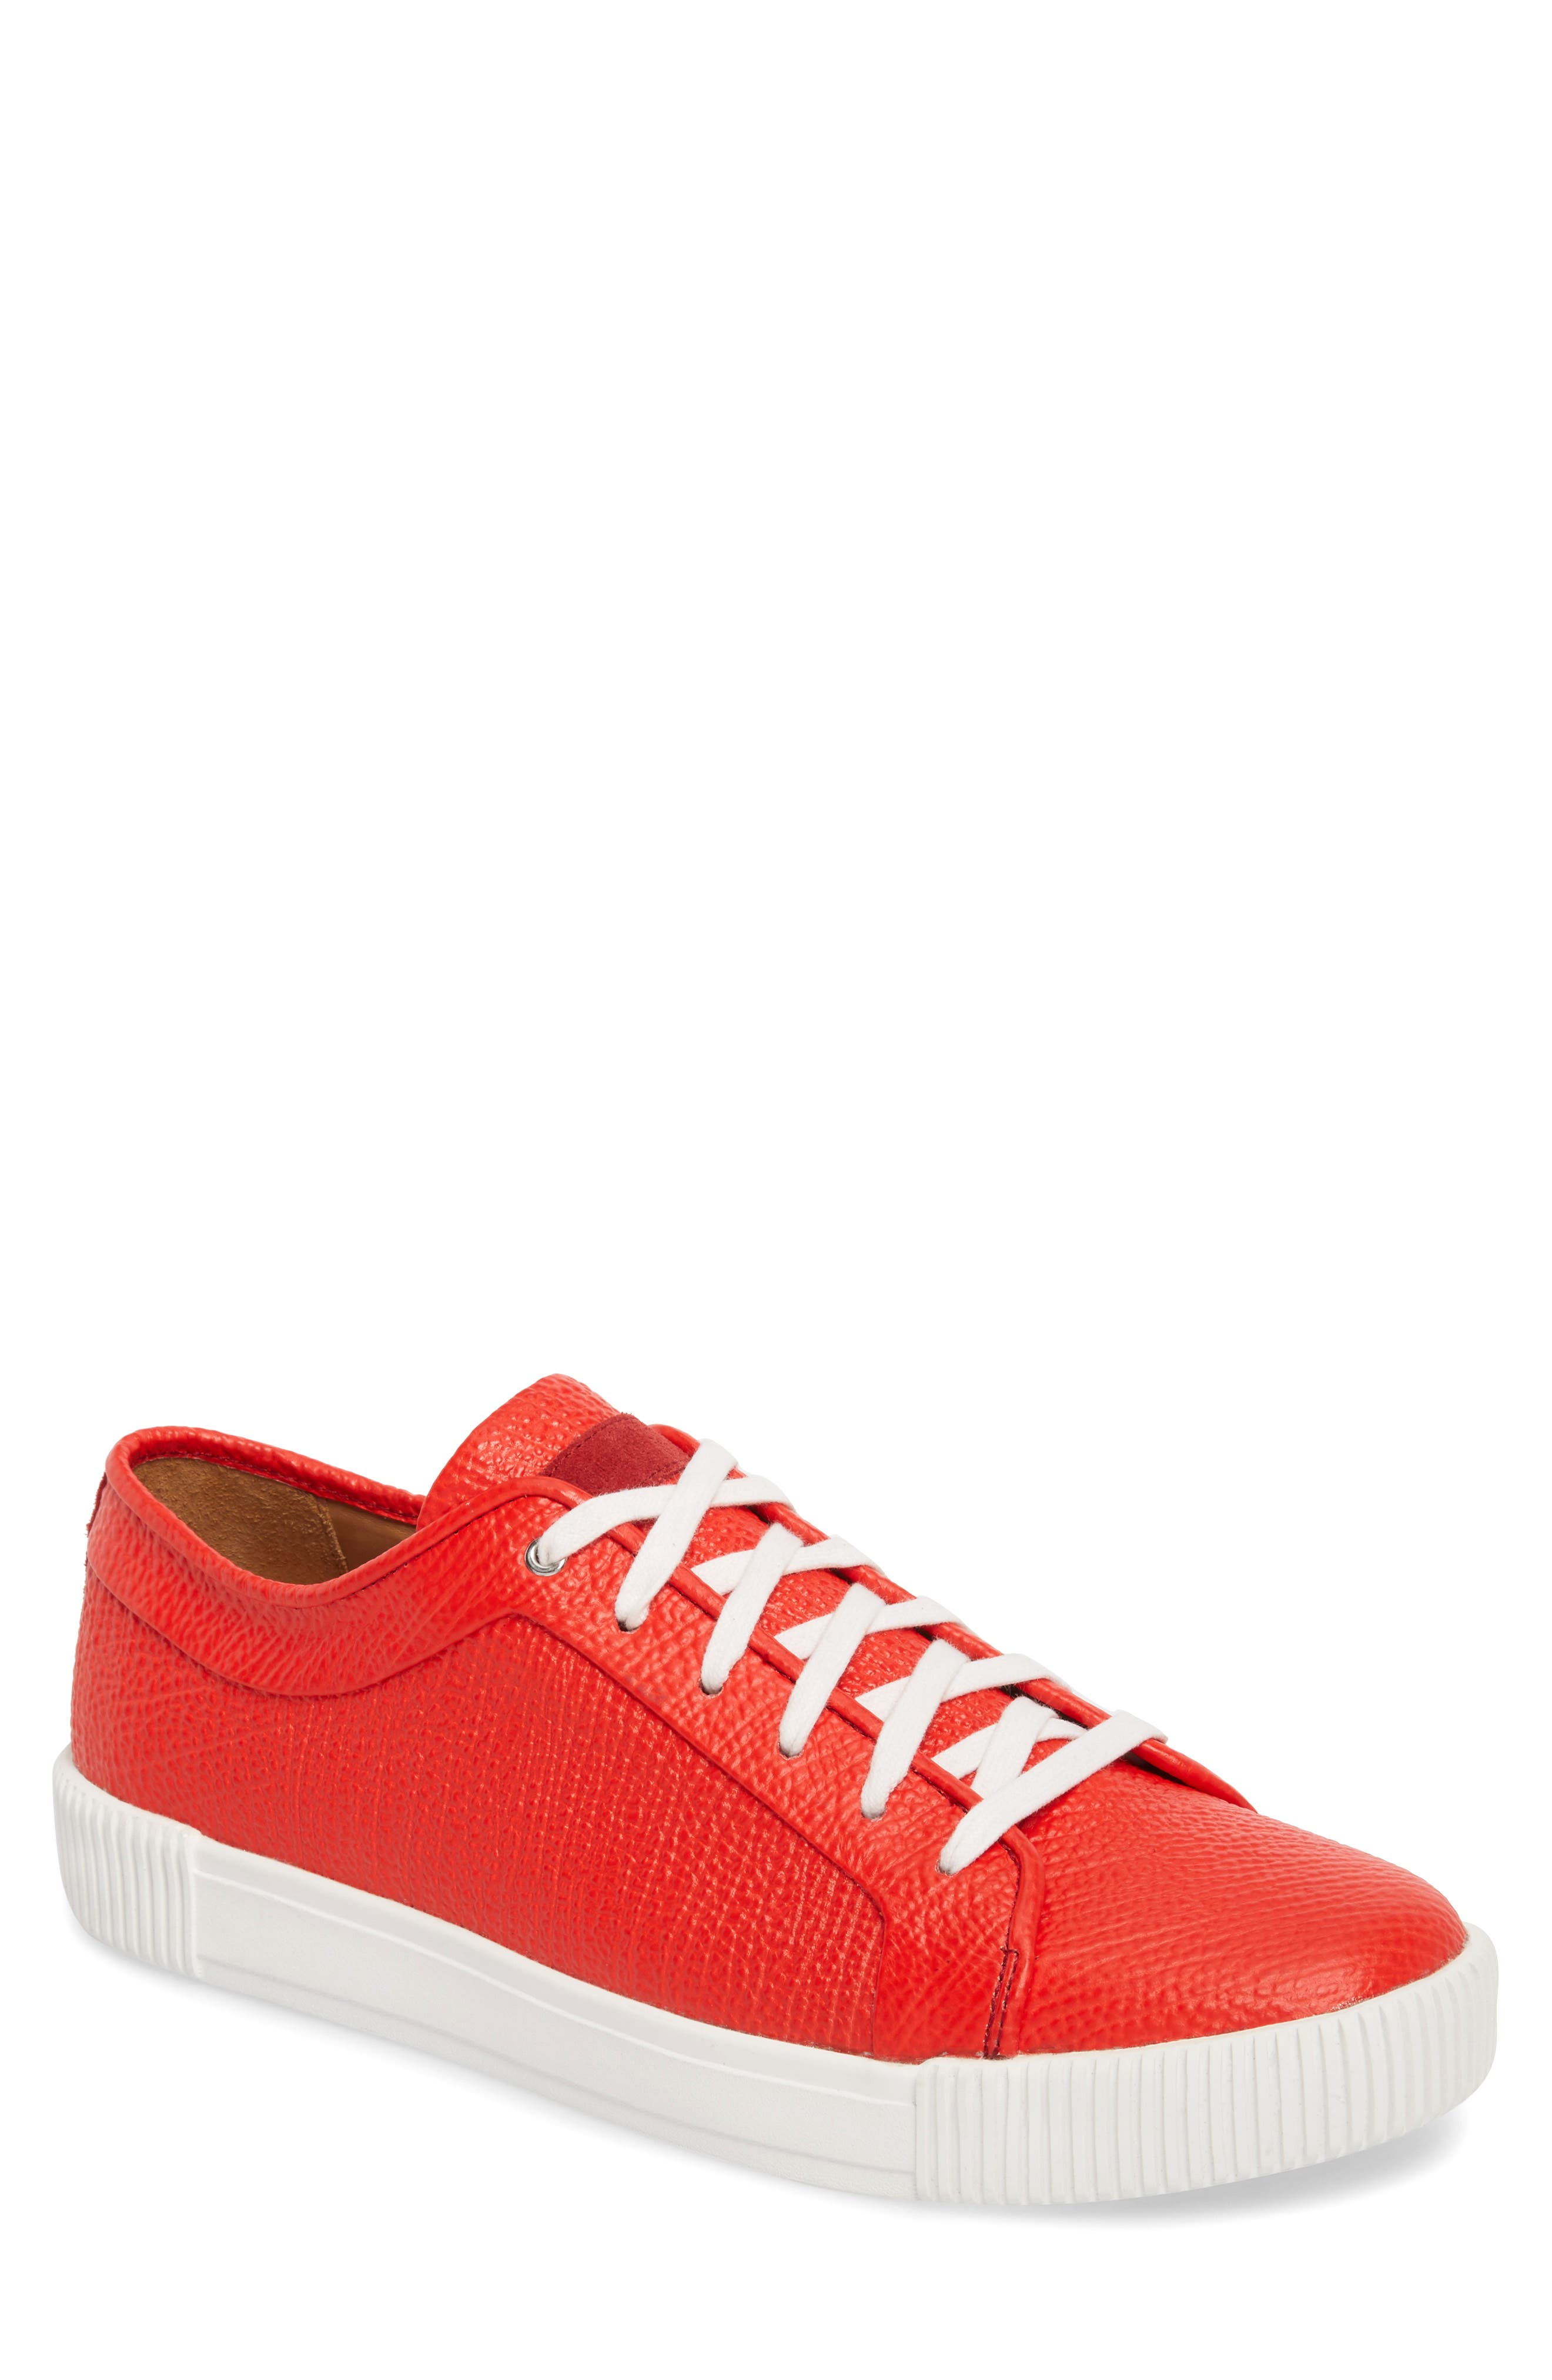 Lyons Low Top Sneaker,                         Main,                         color, Red Leather